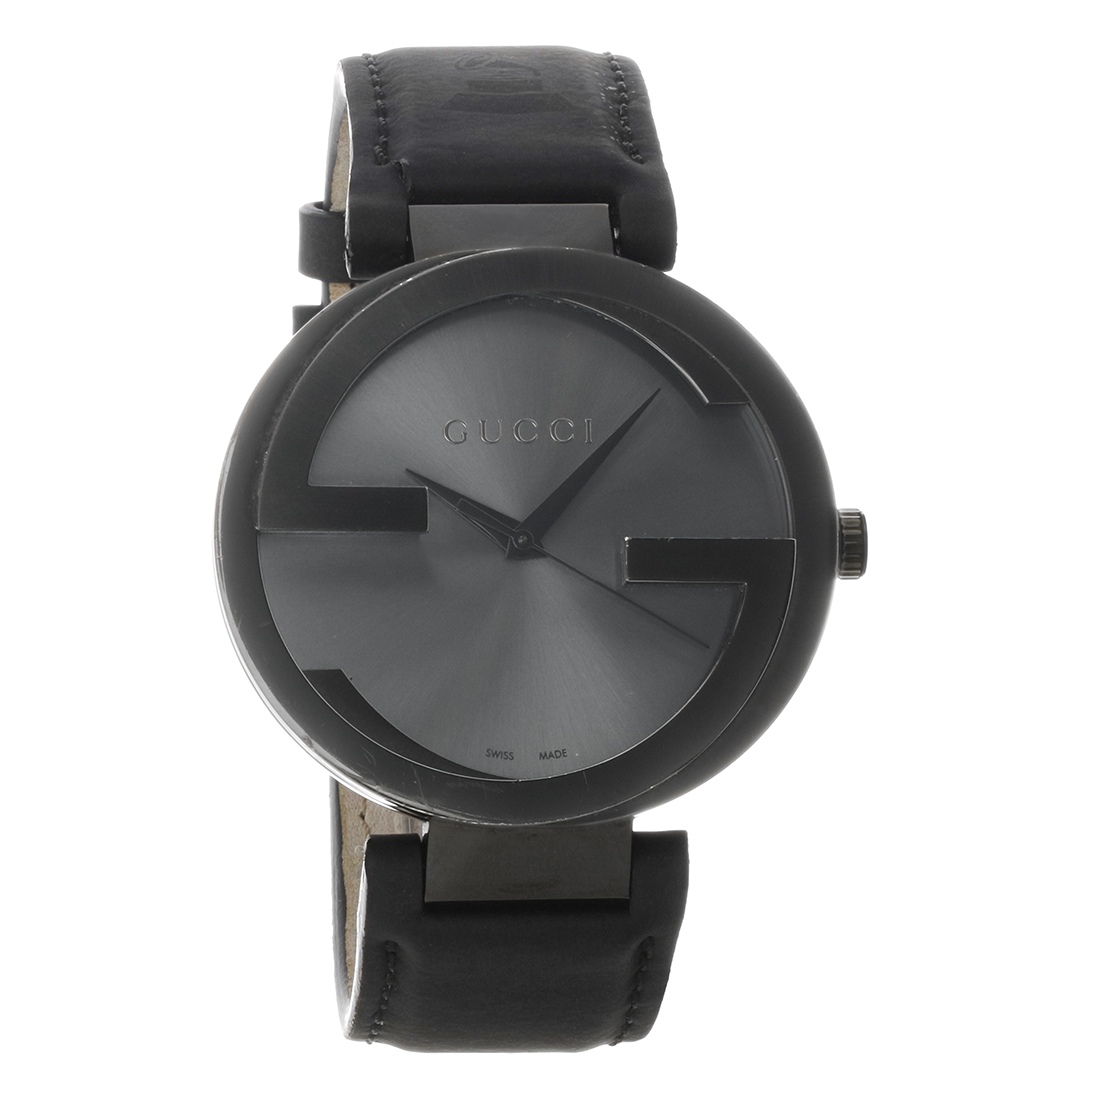 c860b824da1 Gucci 133 Interlocking G Series Black Leather Strap Quartz Watch YA133206